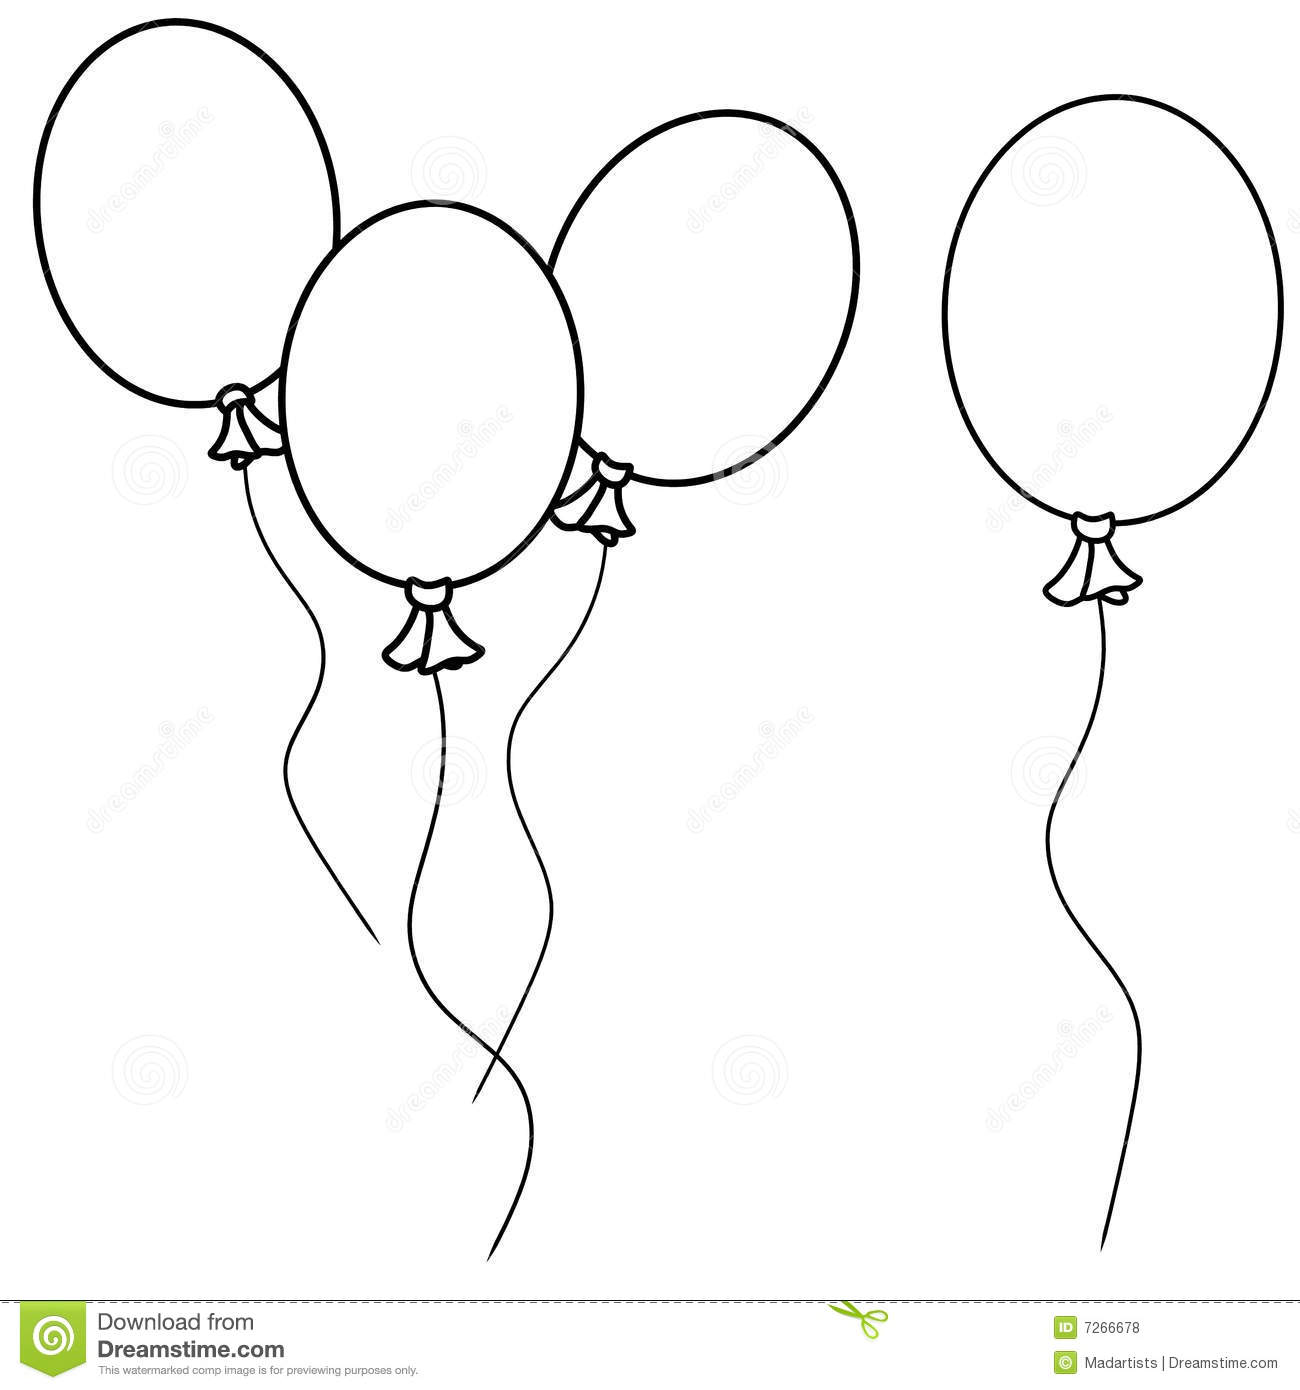 how to draw a balloon birthday border template joy studio design gallery to draw a balloon how